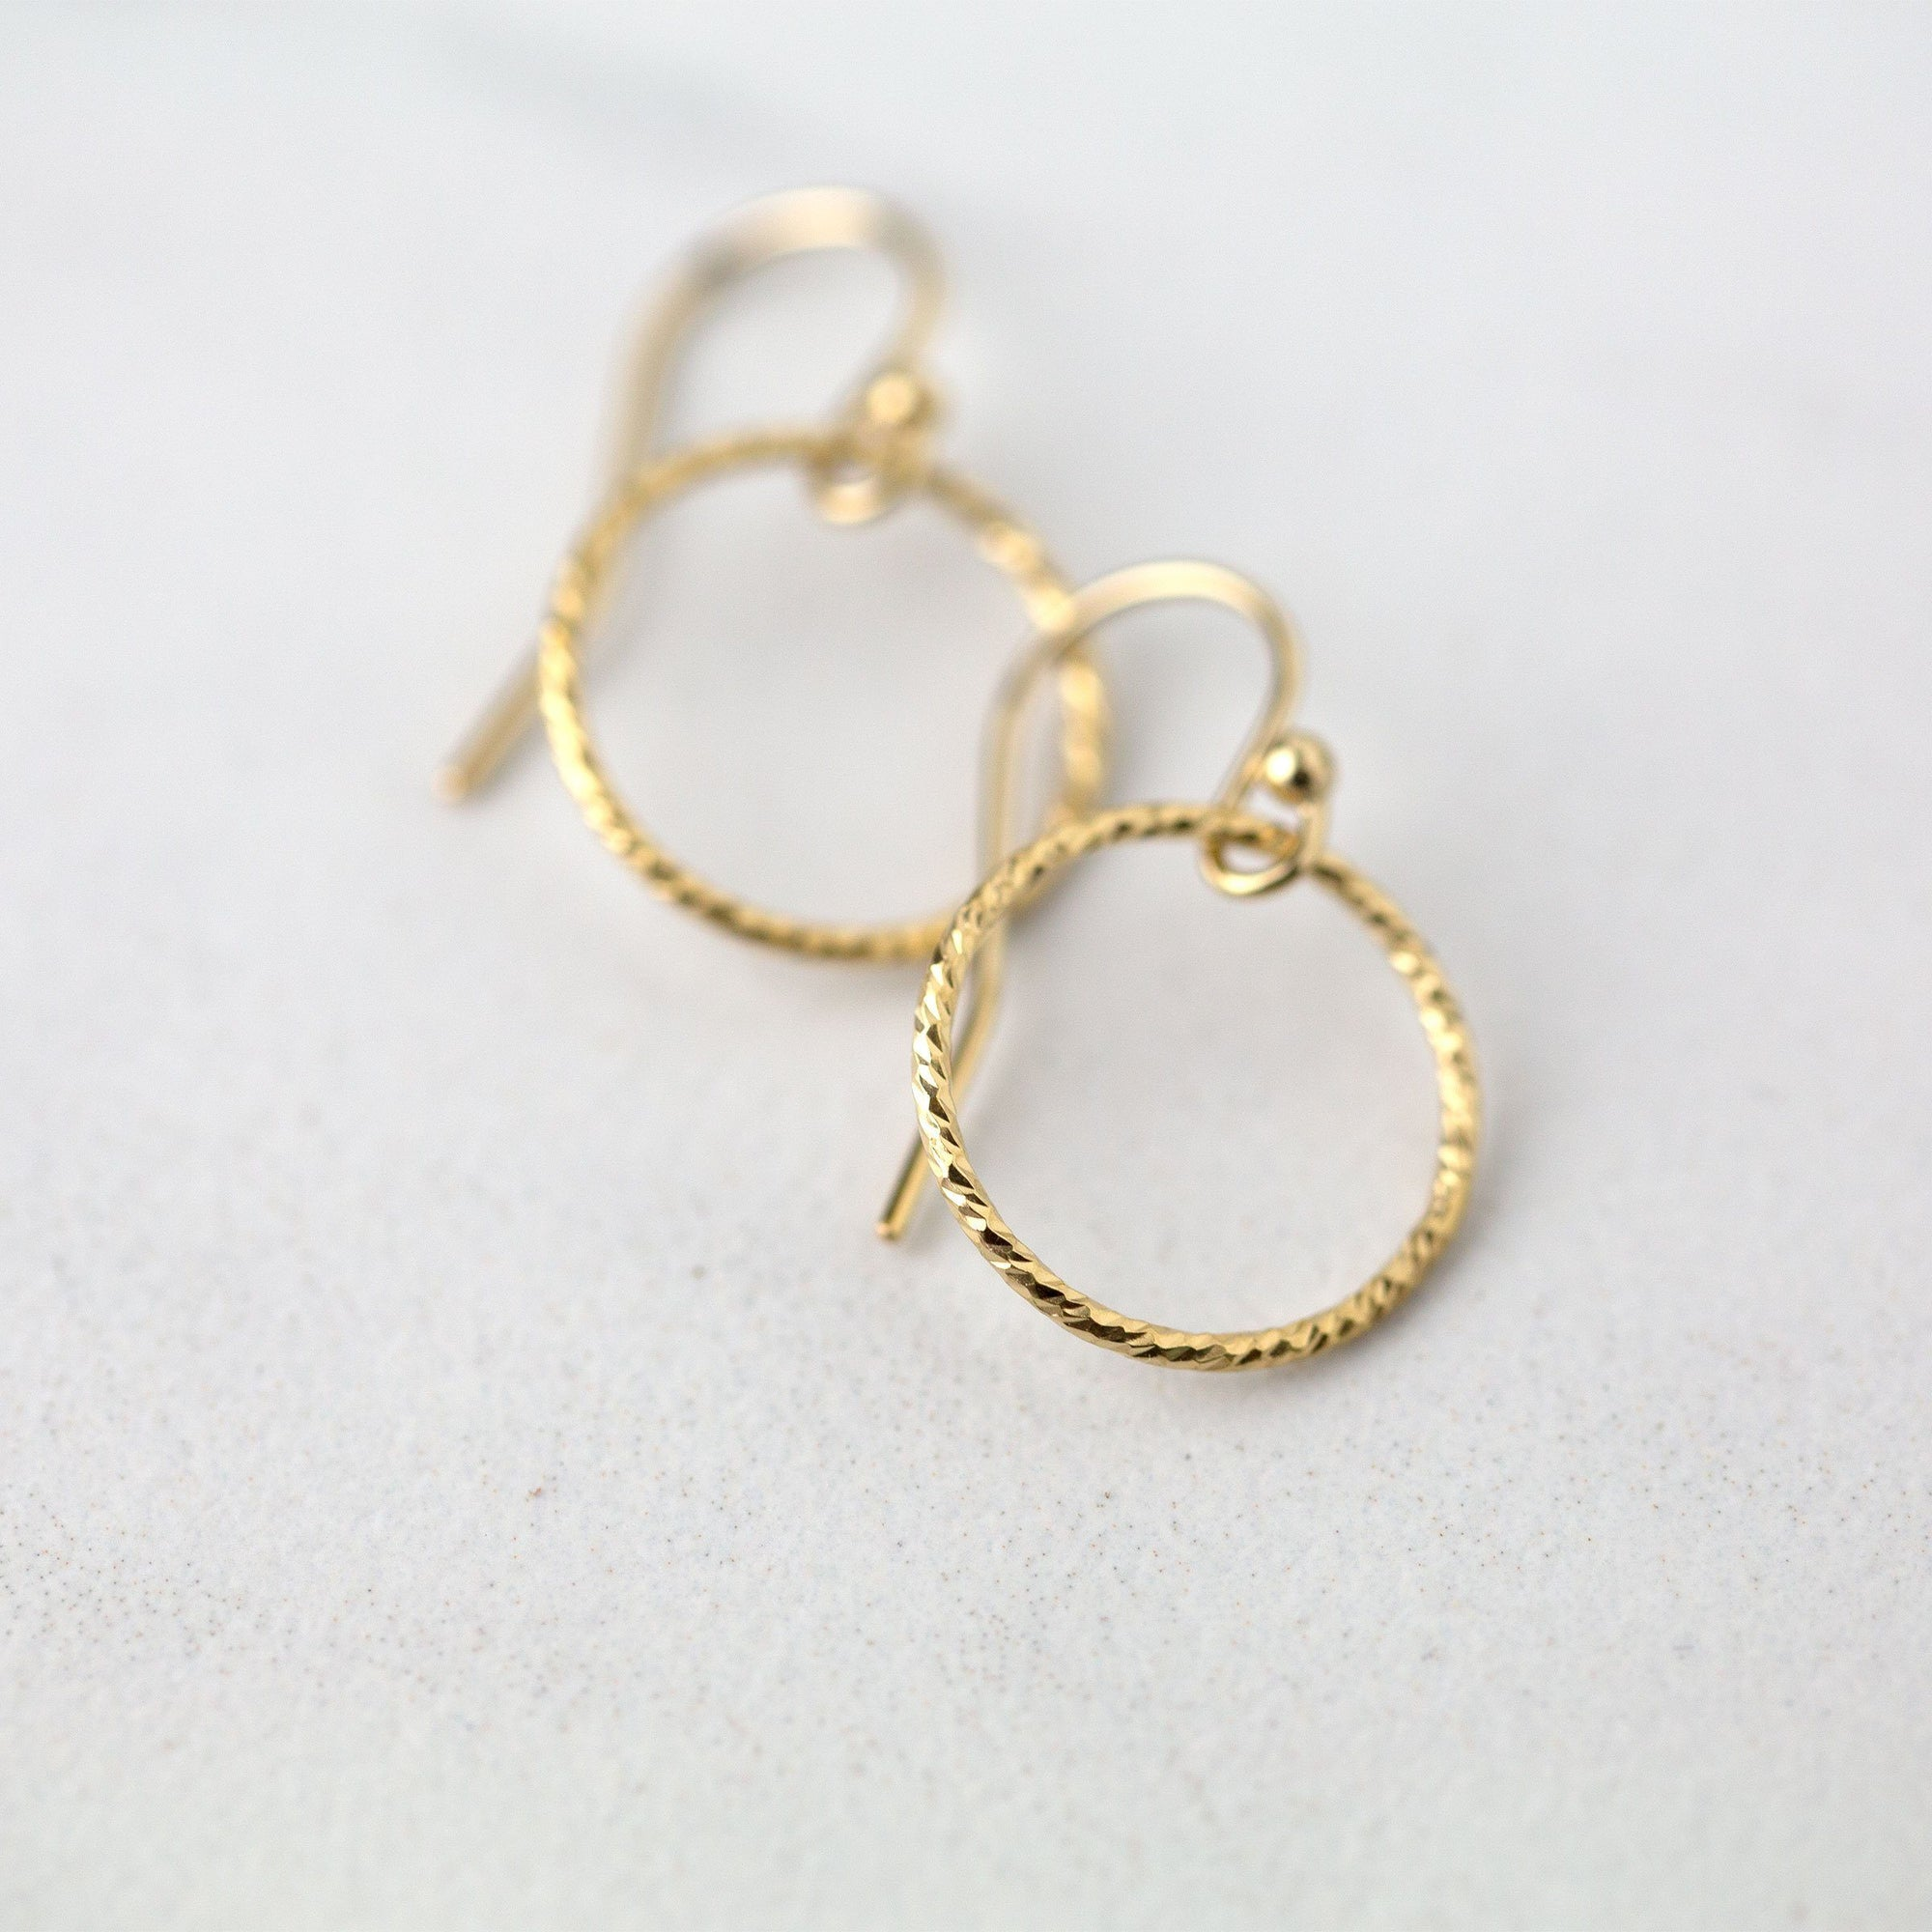 Gold Sparkle Circle Earrings - Handmade Jewelry by Burnish